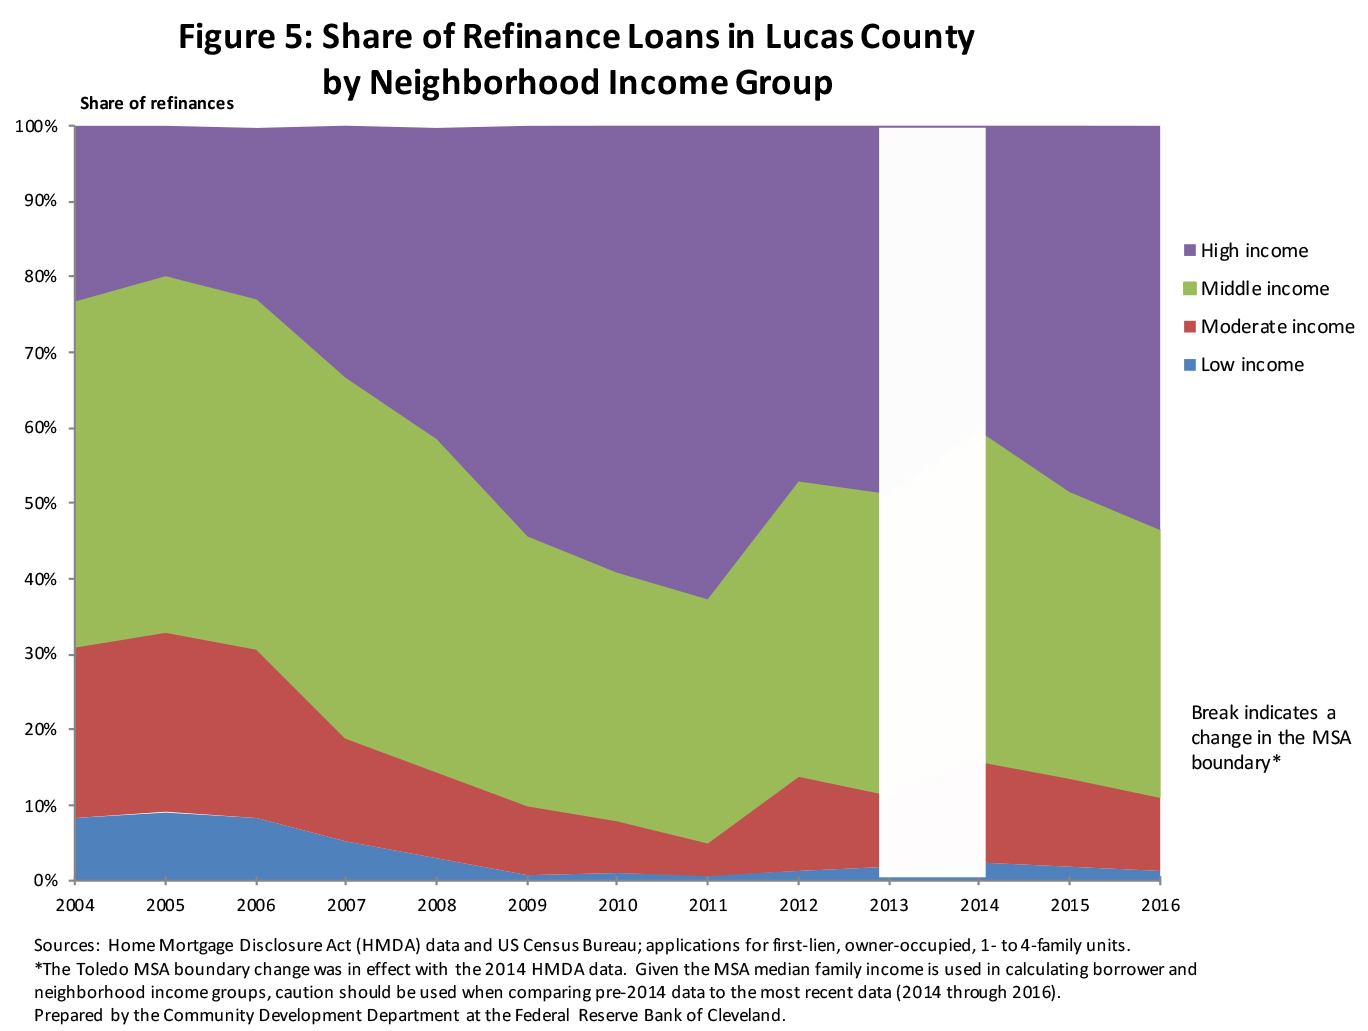 Figure 5: Share of Refinance Loans in Lucas County by Neighborhood Income Group